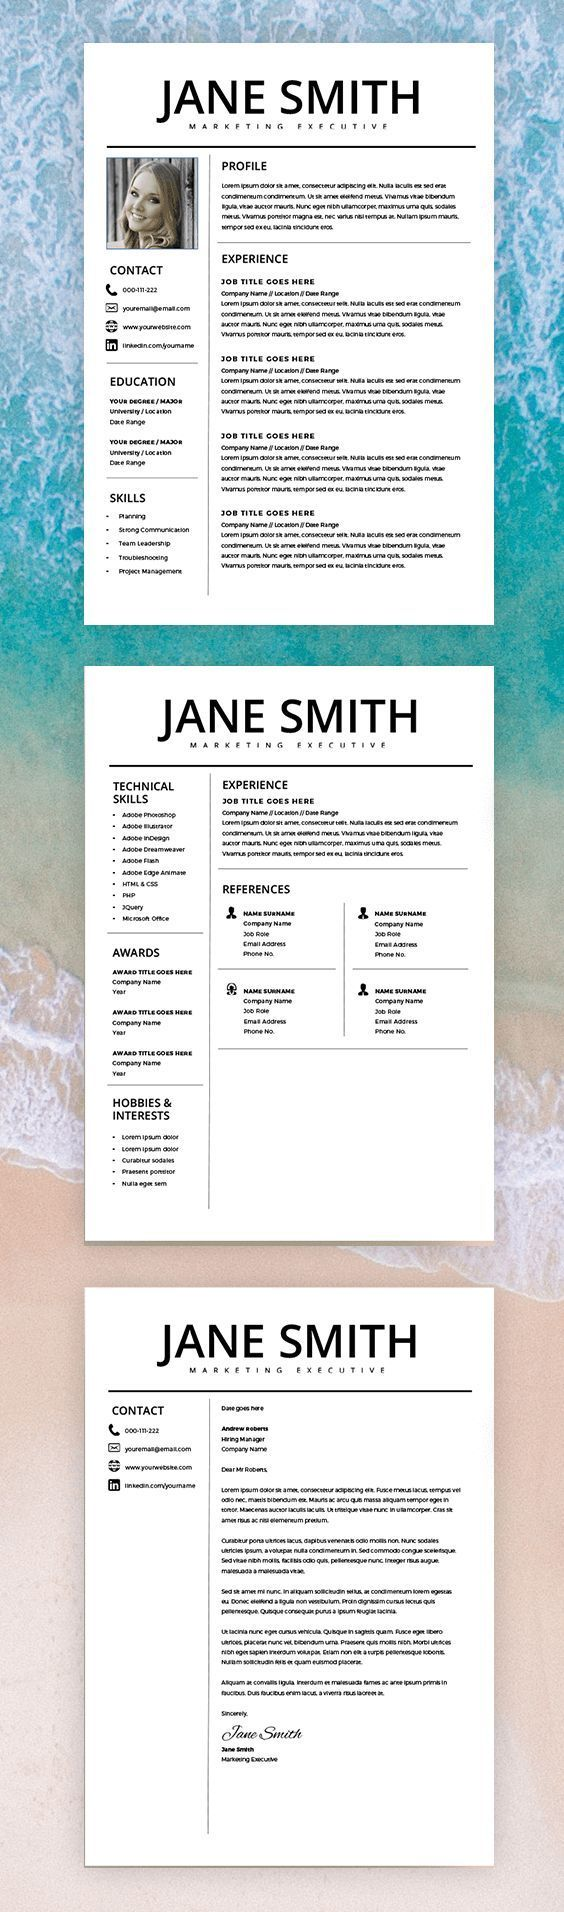 best 25 free cover letter examples ideas on pinterest letter example cover letter format examples and resume cover letter examples - Best Resume Templates For Word